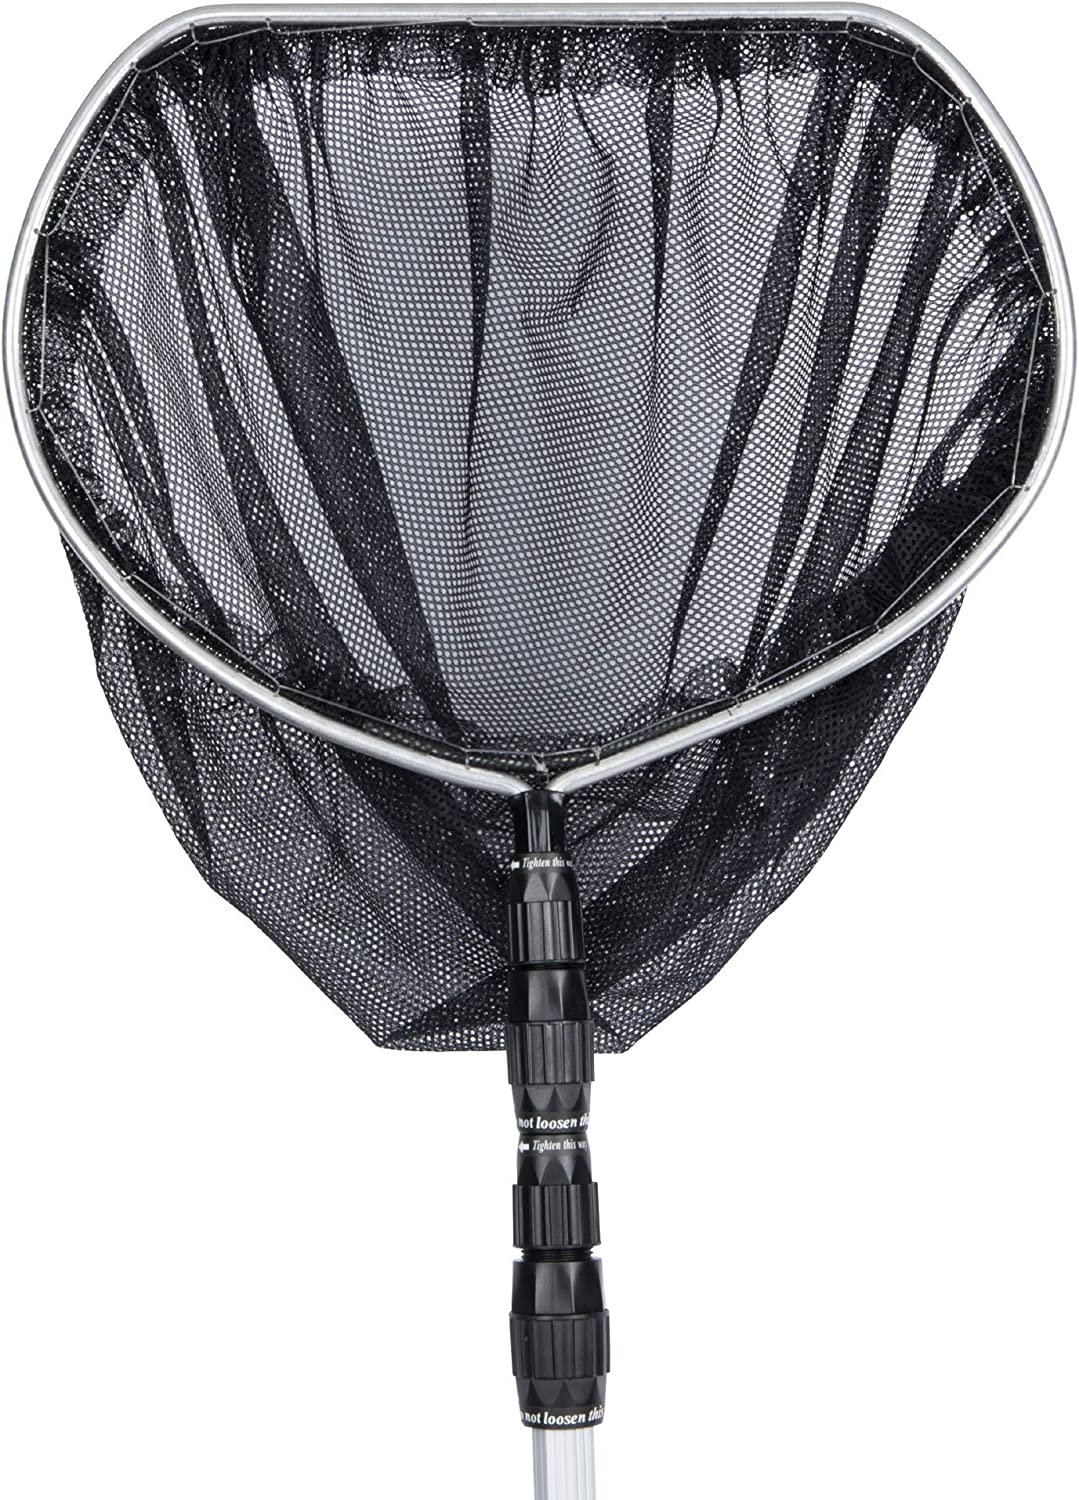 Nycon B-10 Gold-Handle Pond Net 14 x 12 x 8 with 46 Handle